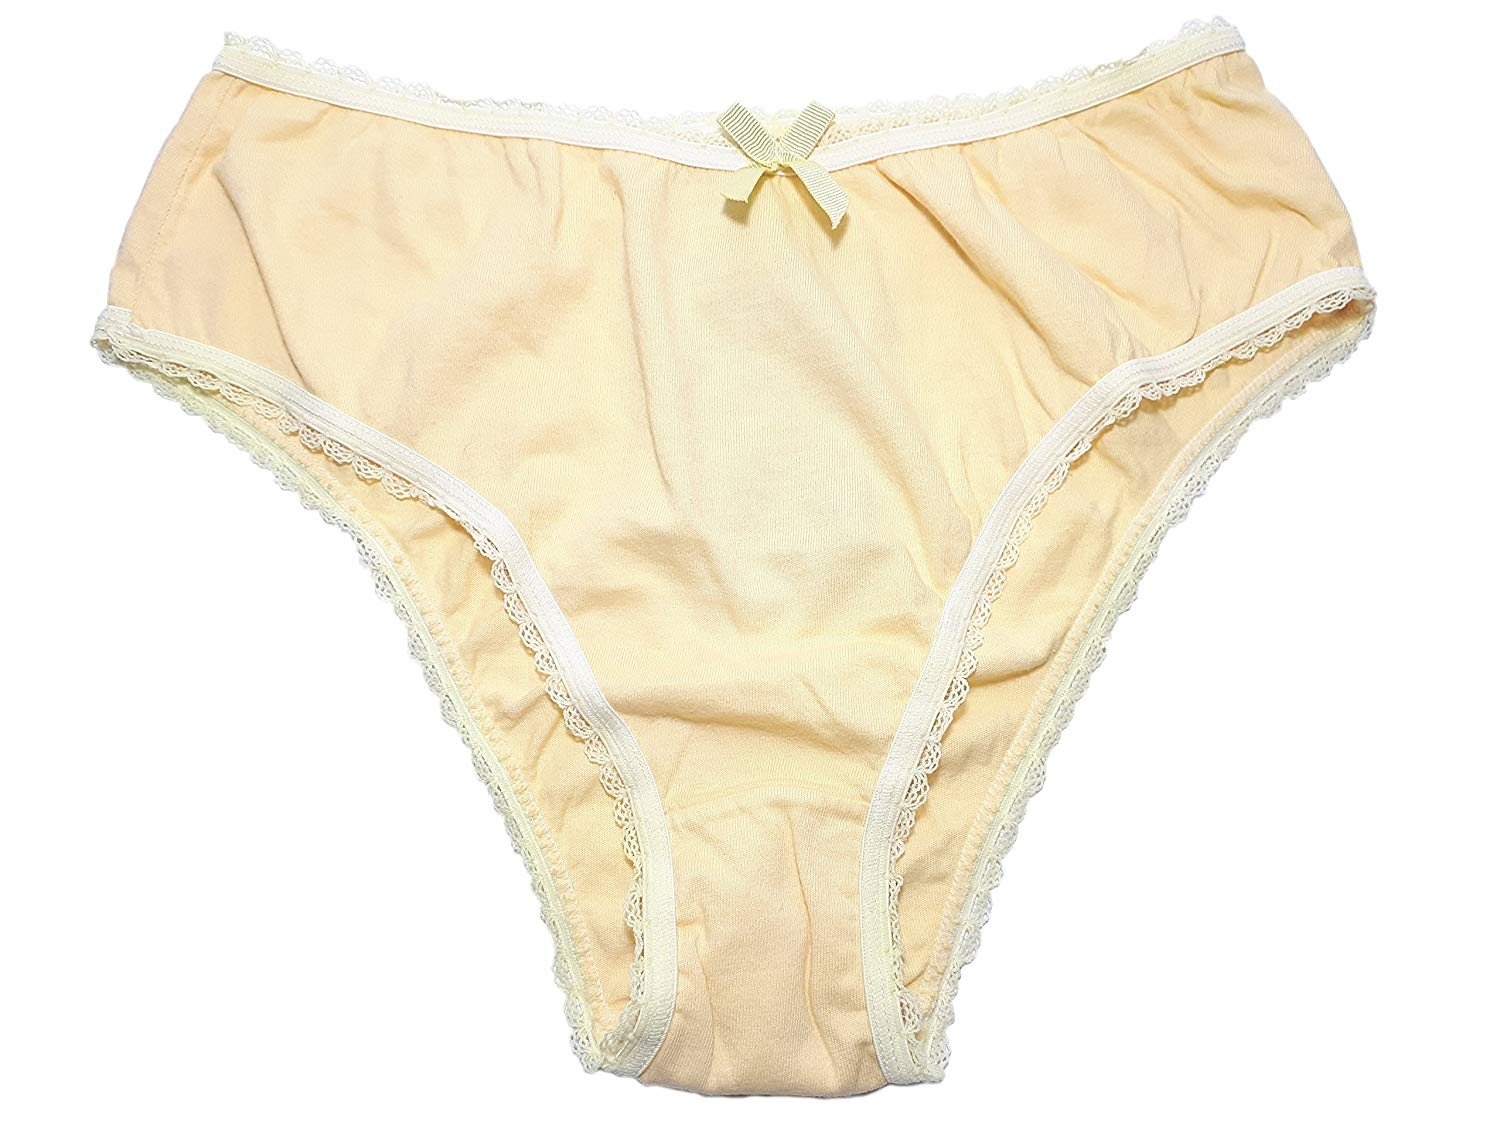 a7e08a2157b7 BAMBUSA BRASIL Women's Brazilian Panties Made with 100% Organic Cotton,  antiallergic mesh and Vegetable